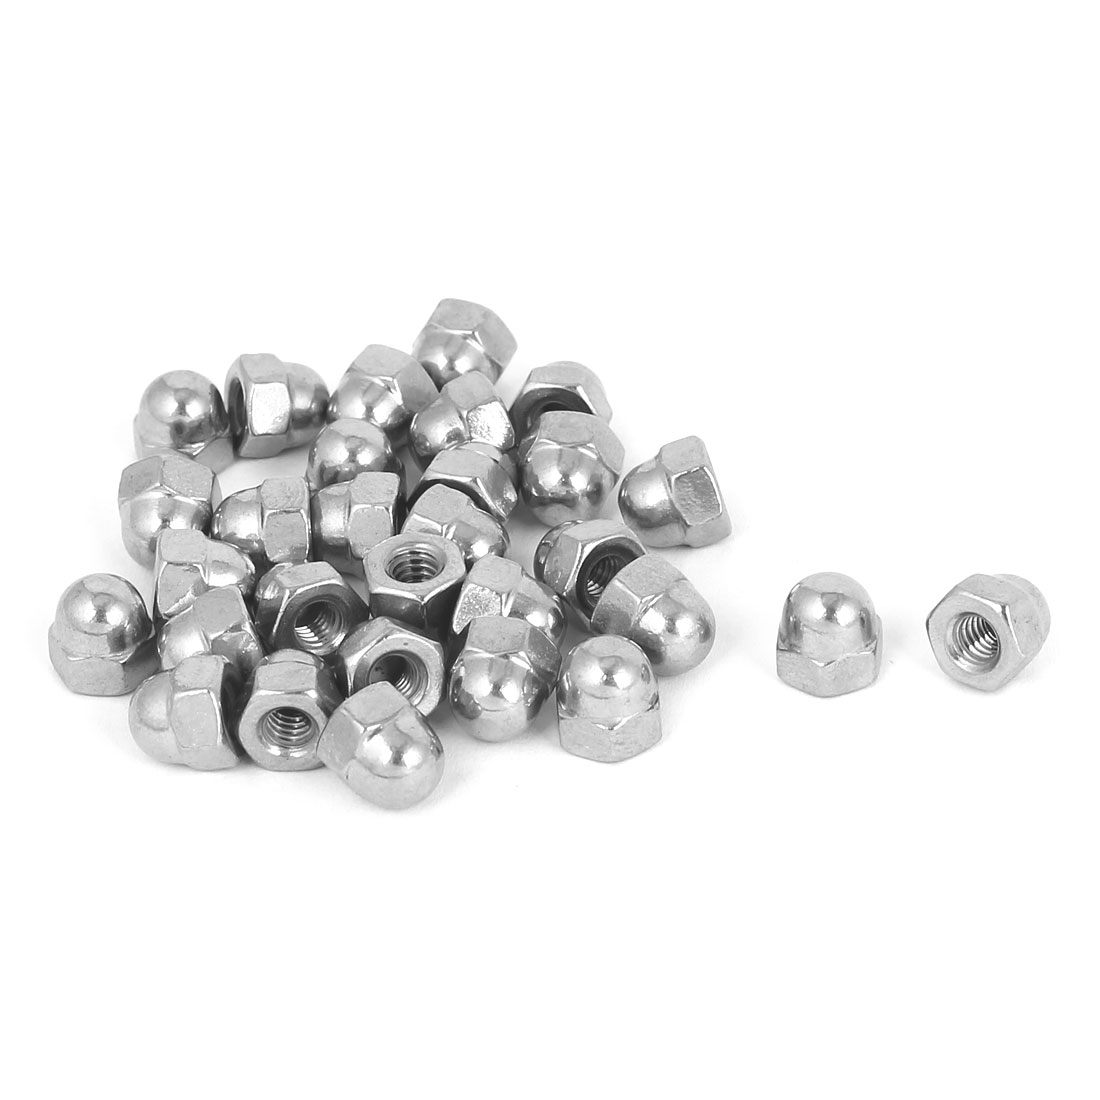 8#-32 304 Stainless Steel Dome Head Cap Hexagon Nuts Silver Tone 30pcs